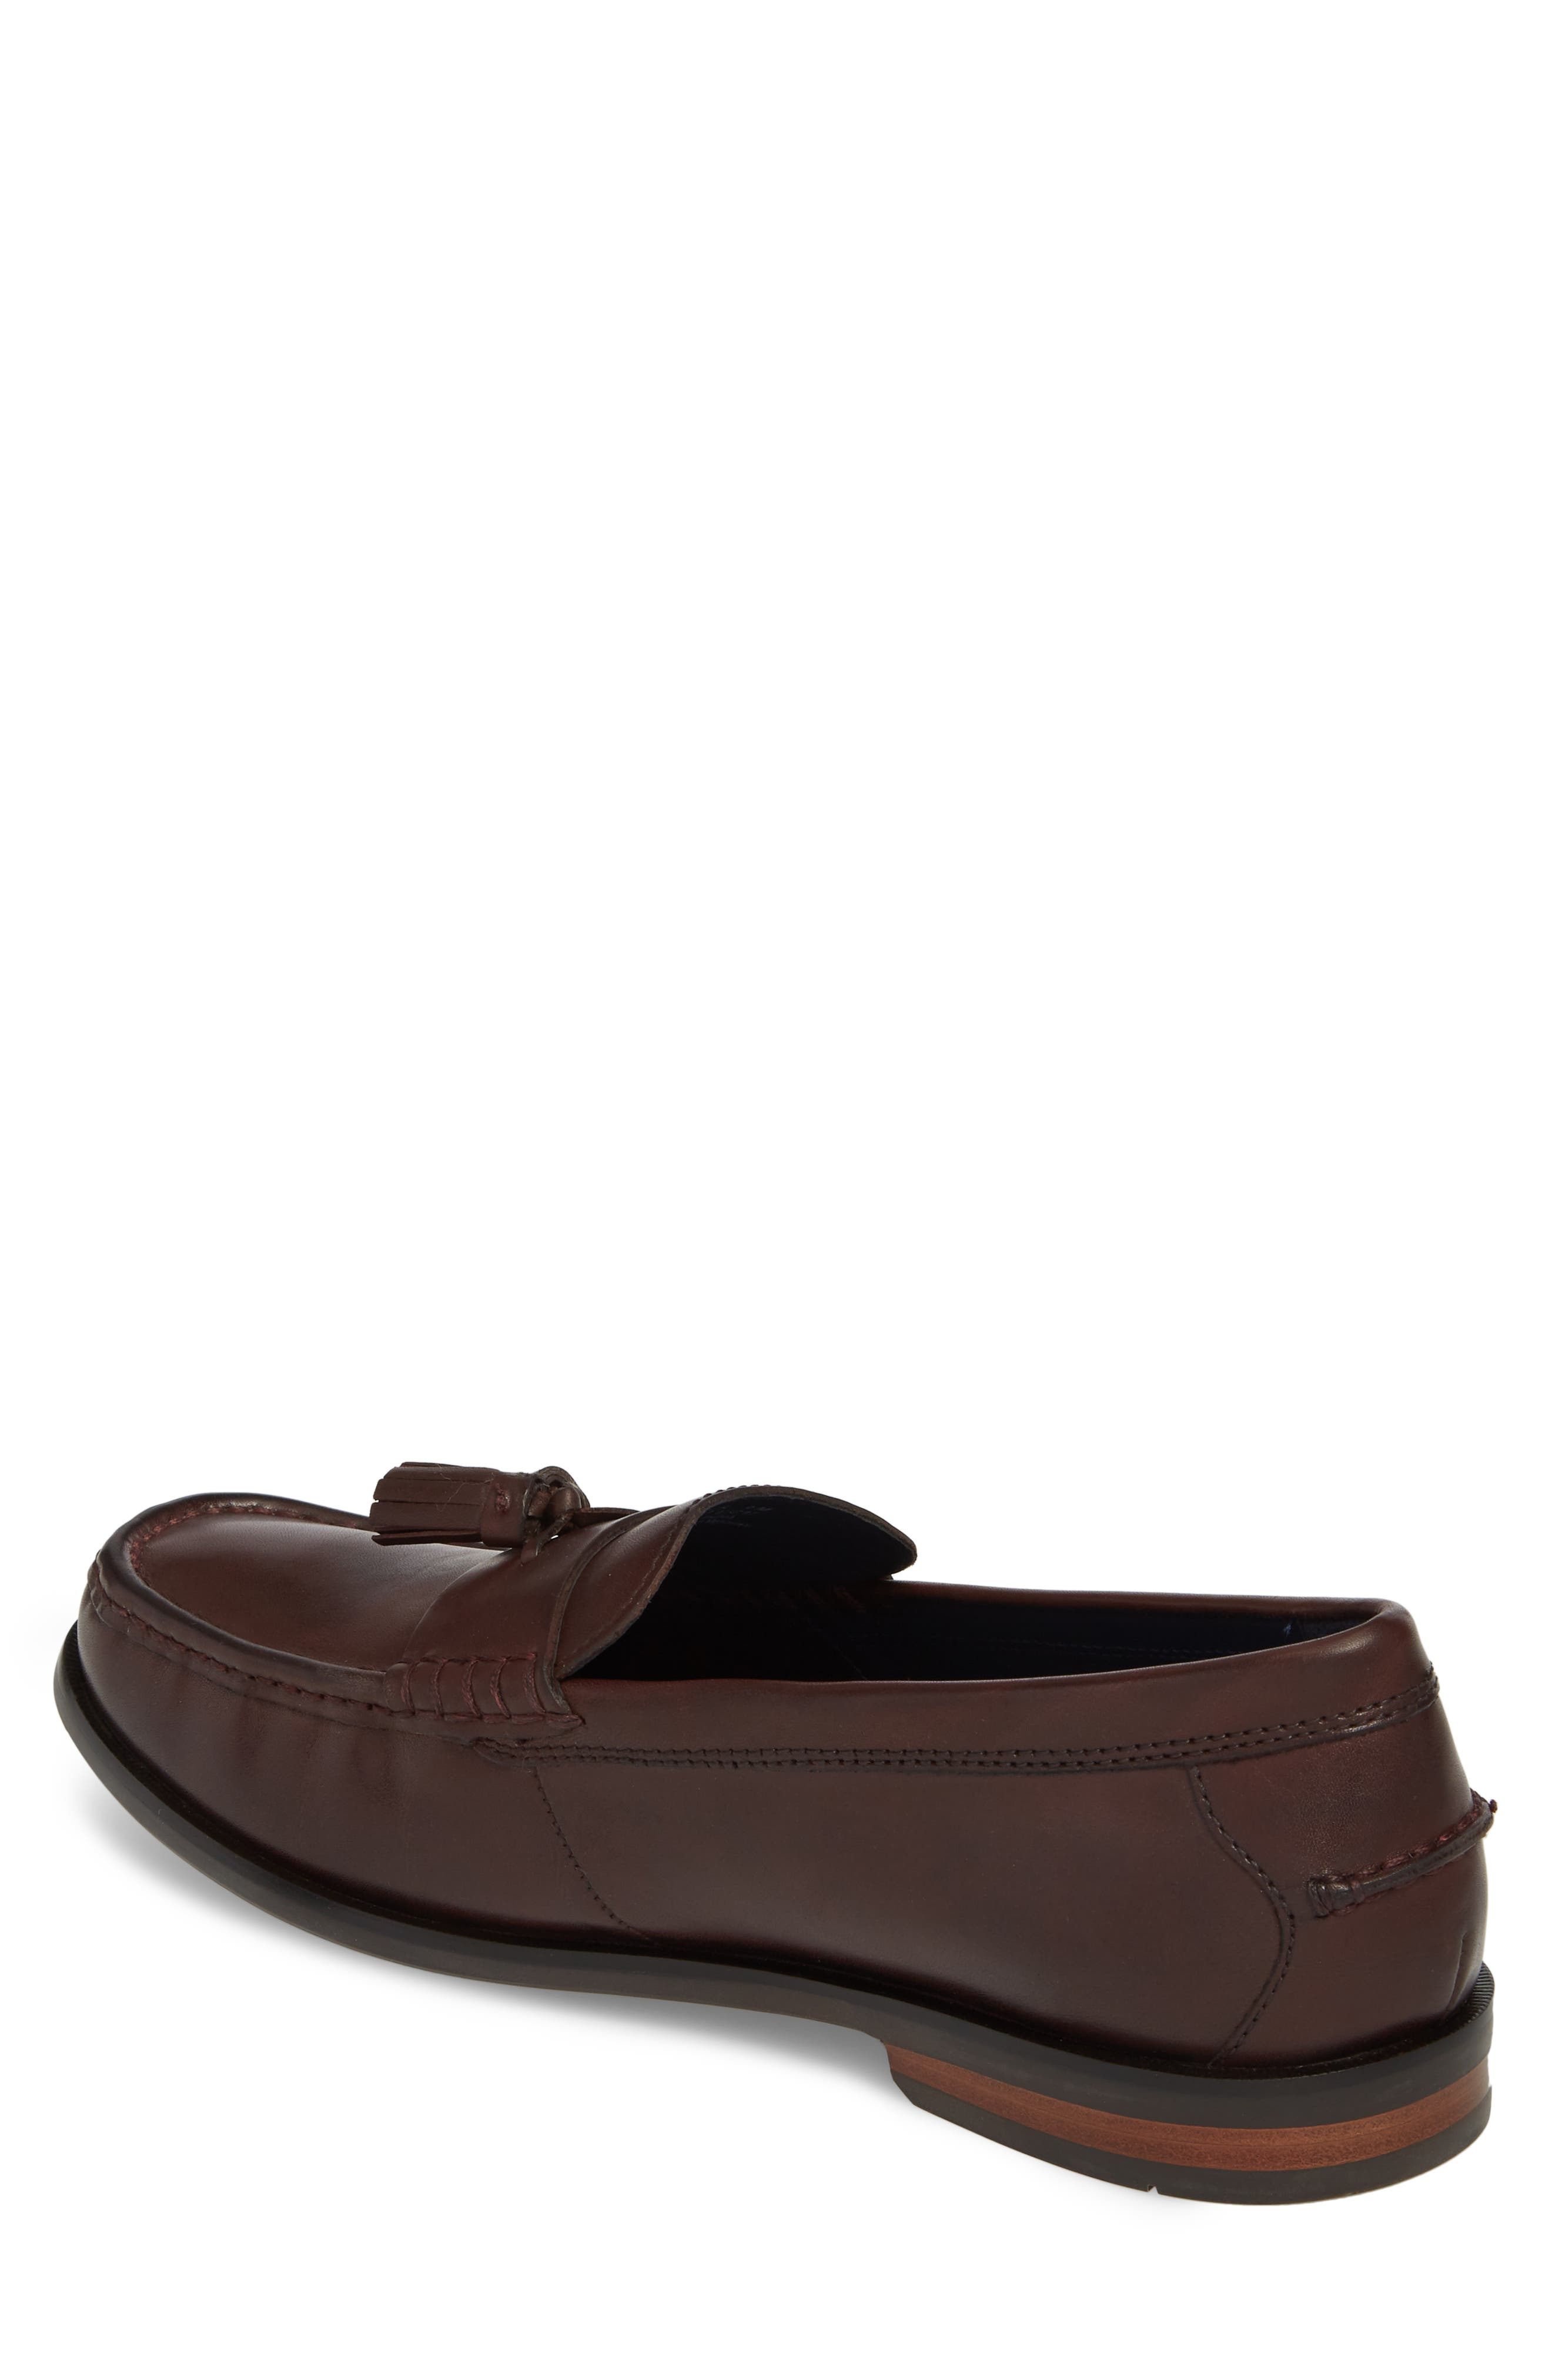 COLE HAAN, Pinch Friday Tassel Loafer, Alternate thumbnail 2, color, BURGUNDY LEATHER